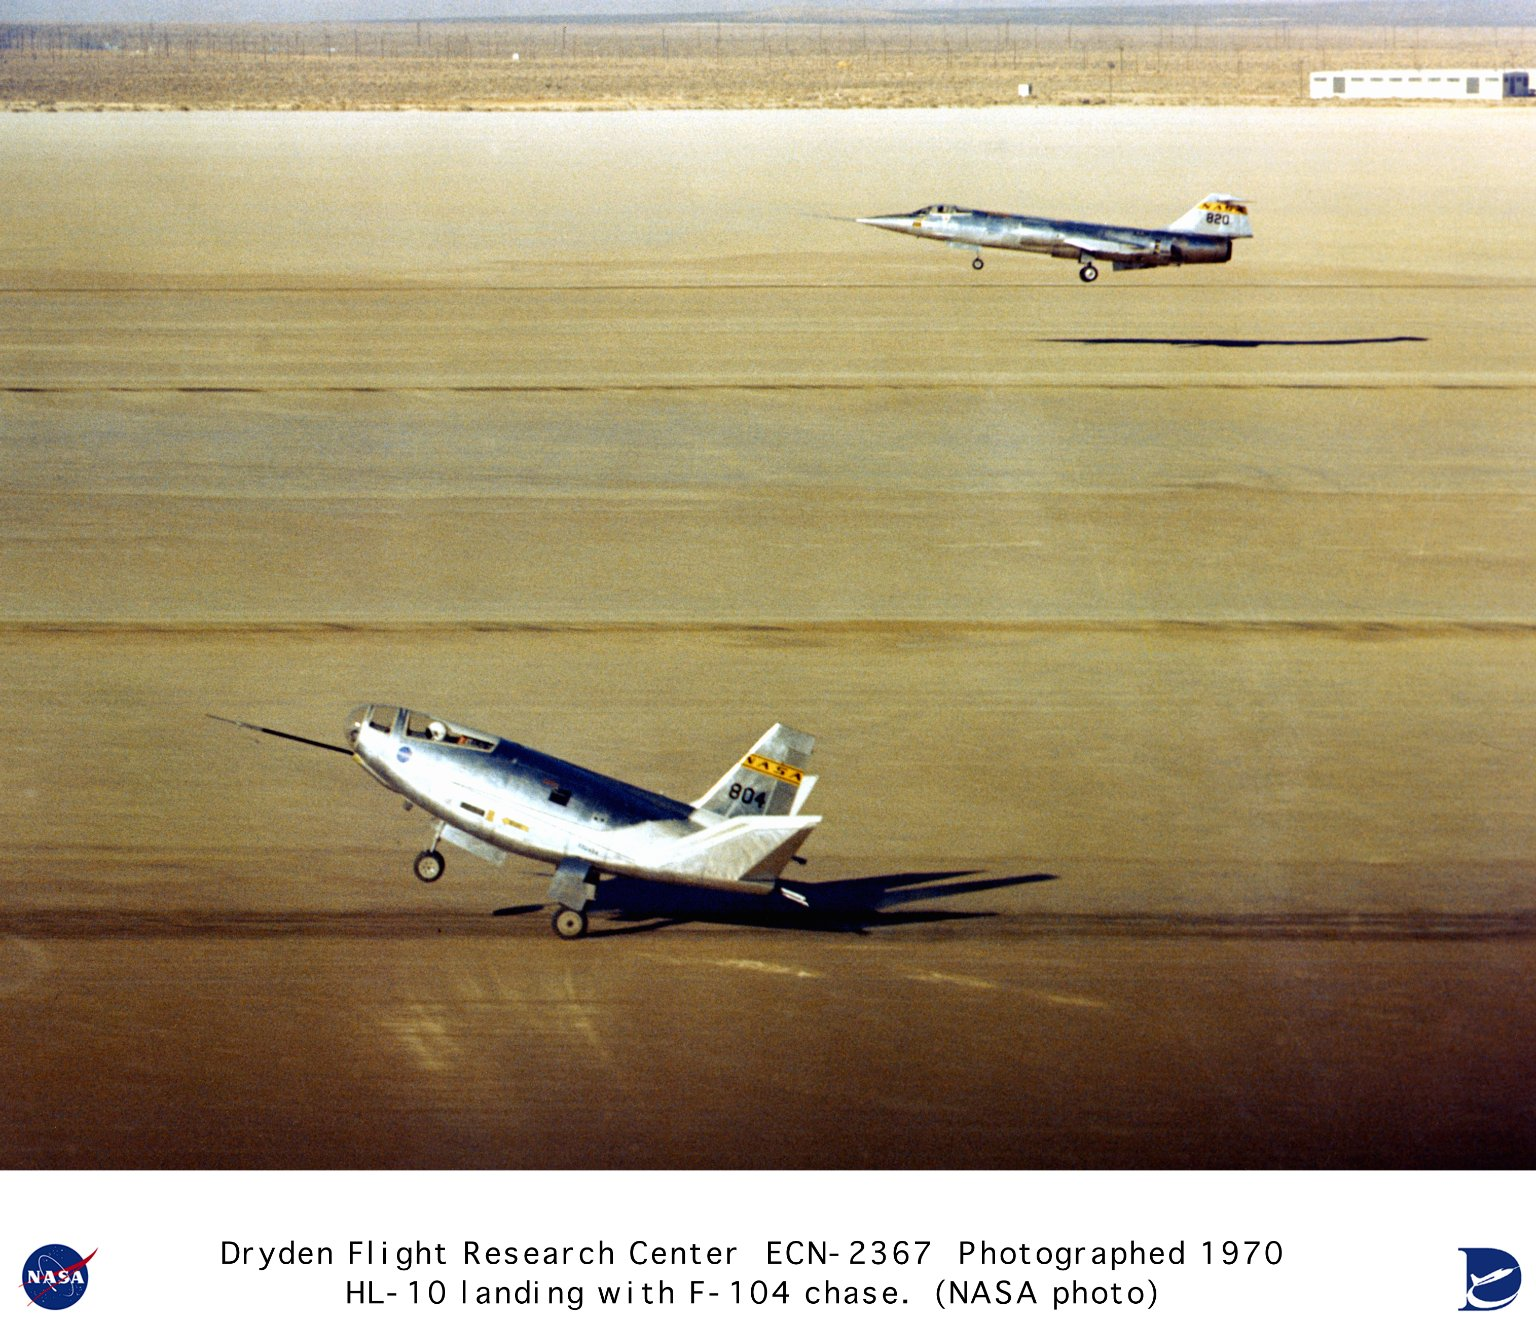 HL-10 landing on lakebed with F-104 chase aircraft